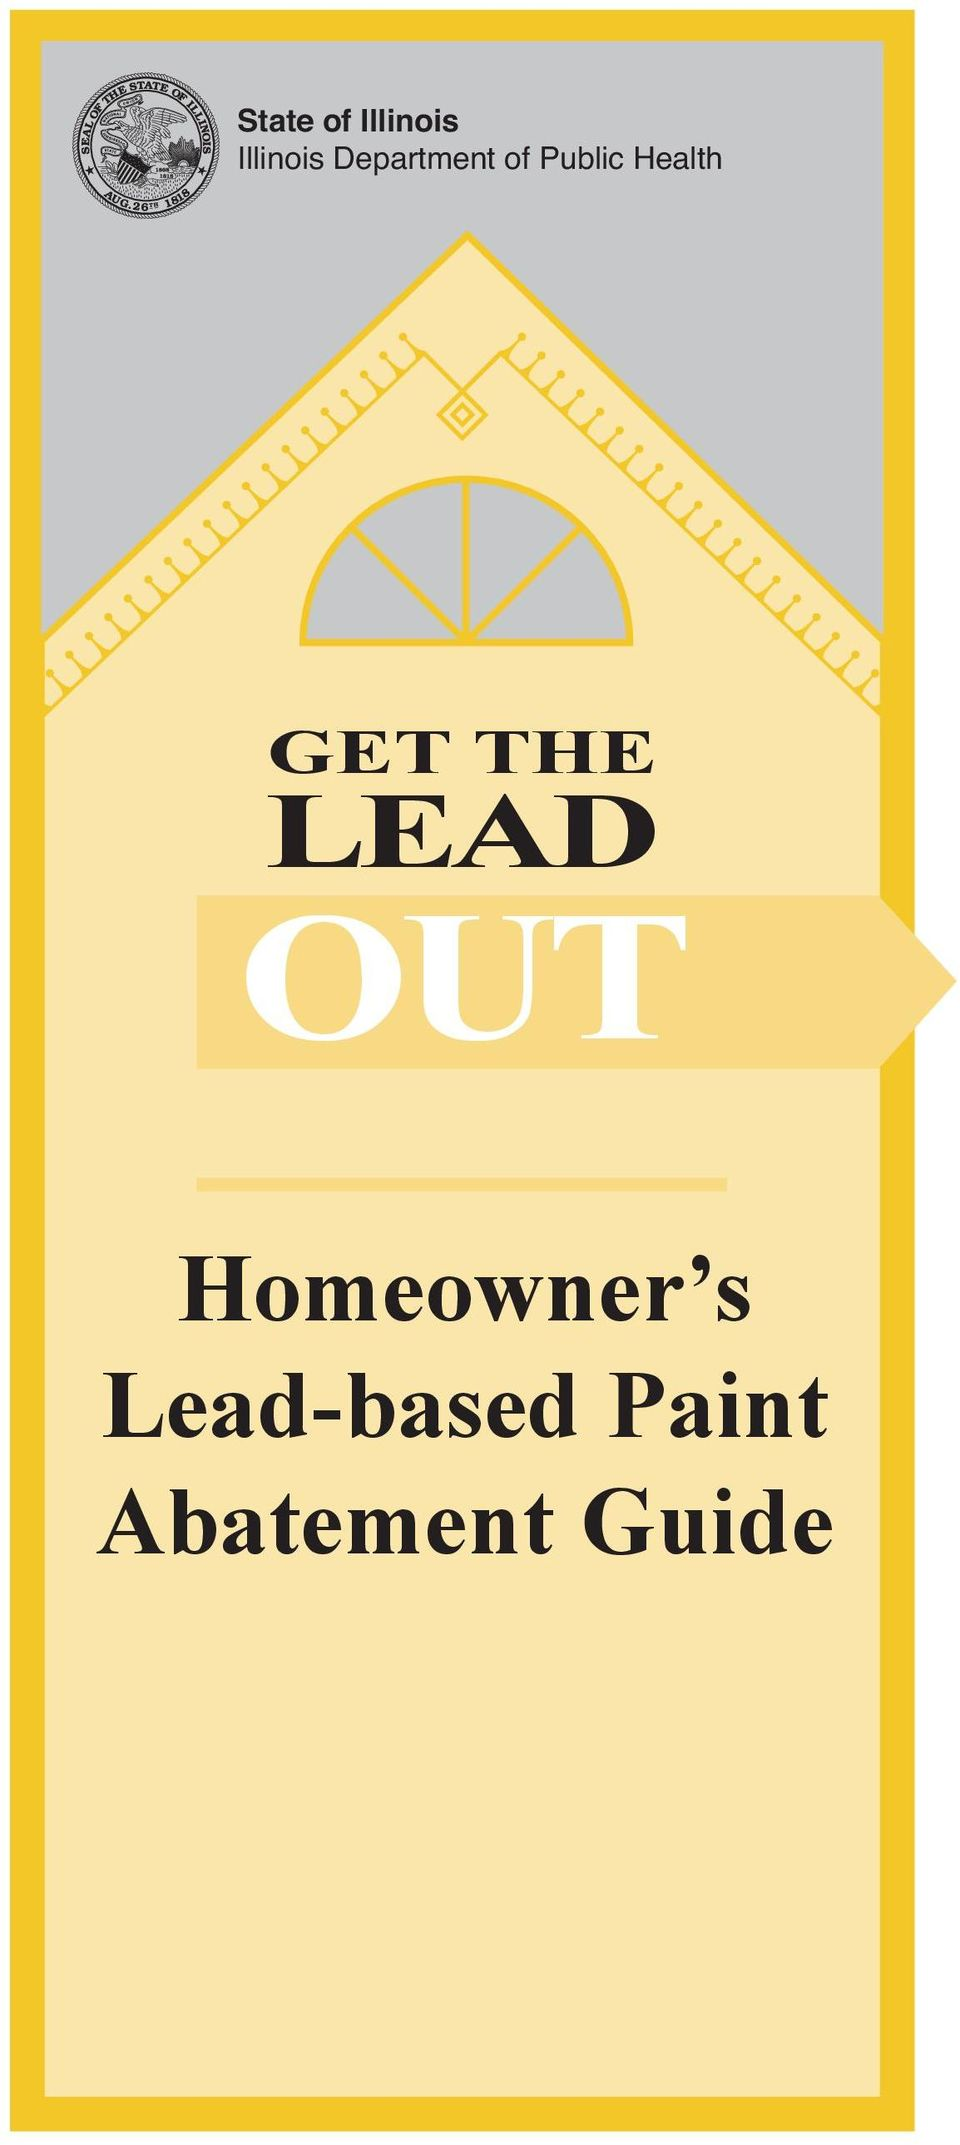 GET THE LEAD OUT Homeowner s